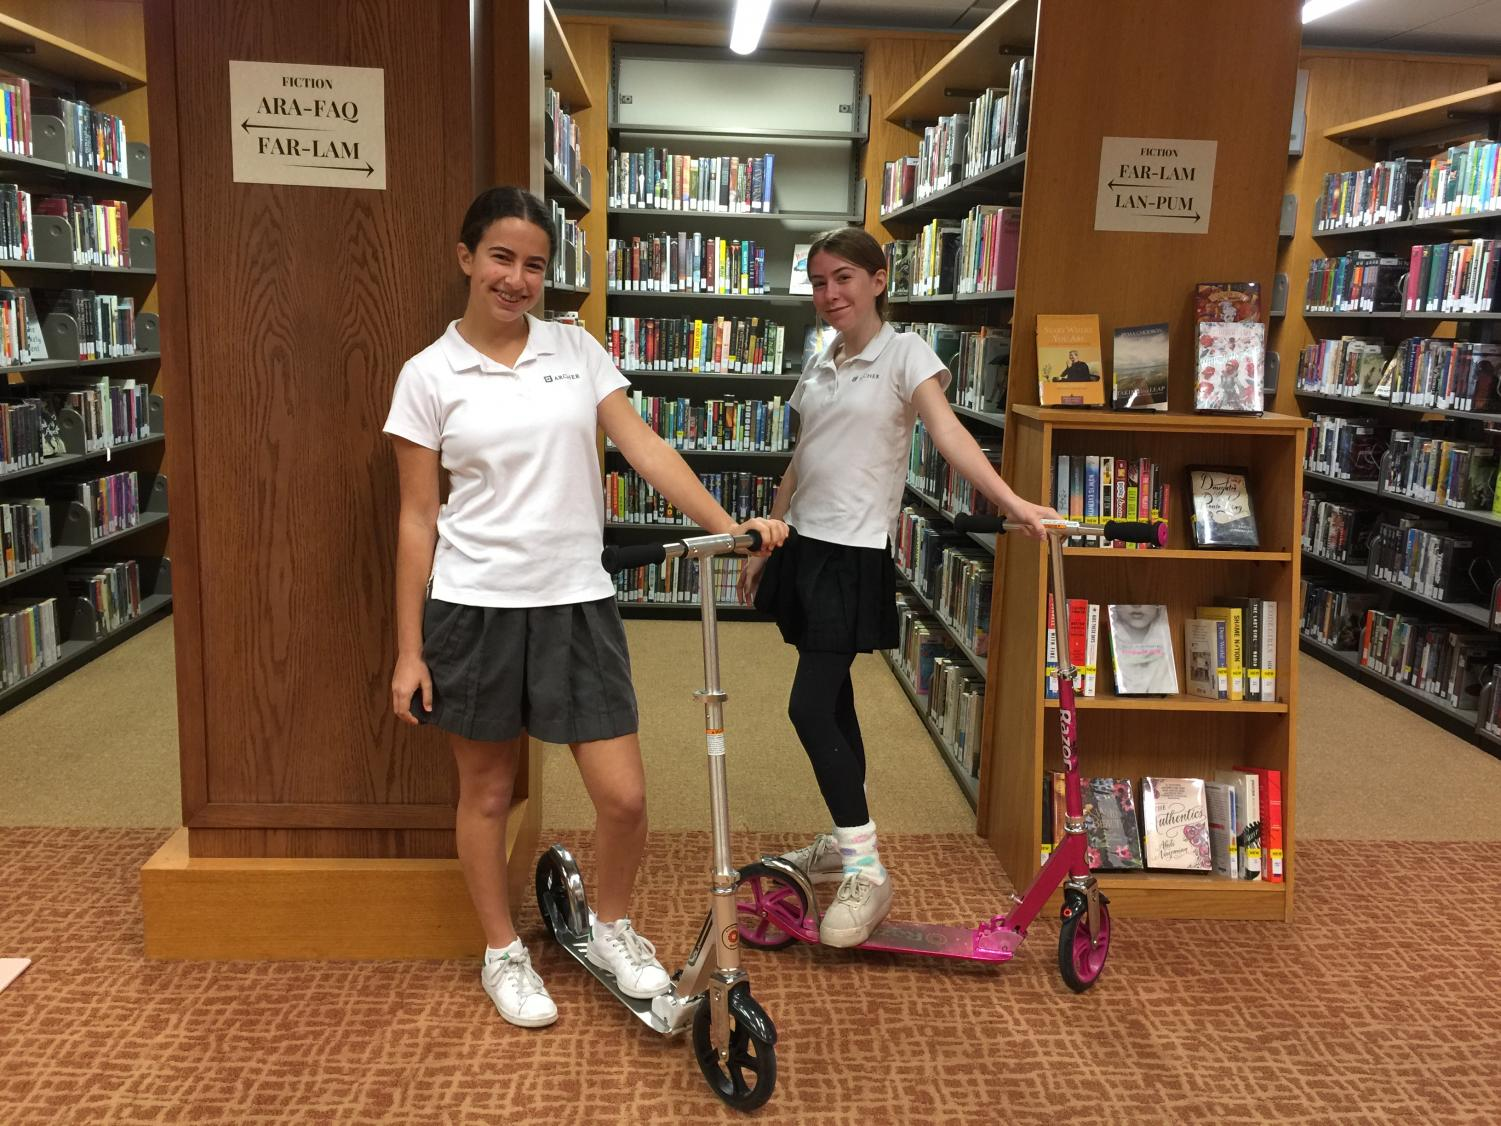 Jessica Tuchin '21 and Shainna Orecklin '21 pose for a picture with their scooters in the library.  Every morning, they drop their scooters off in the library to be stored for the day.